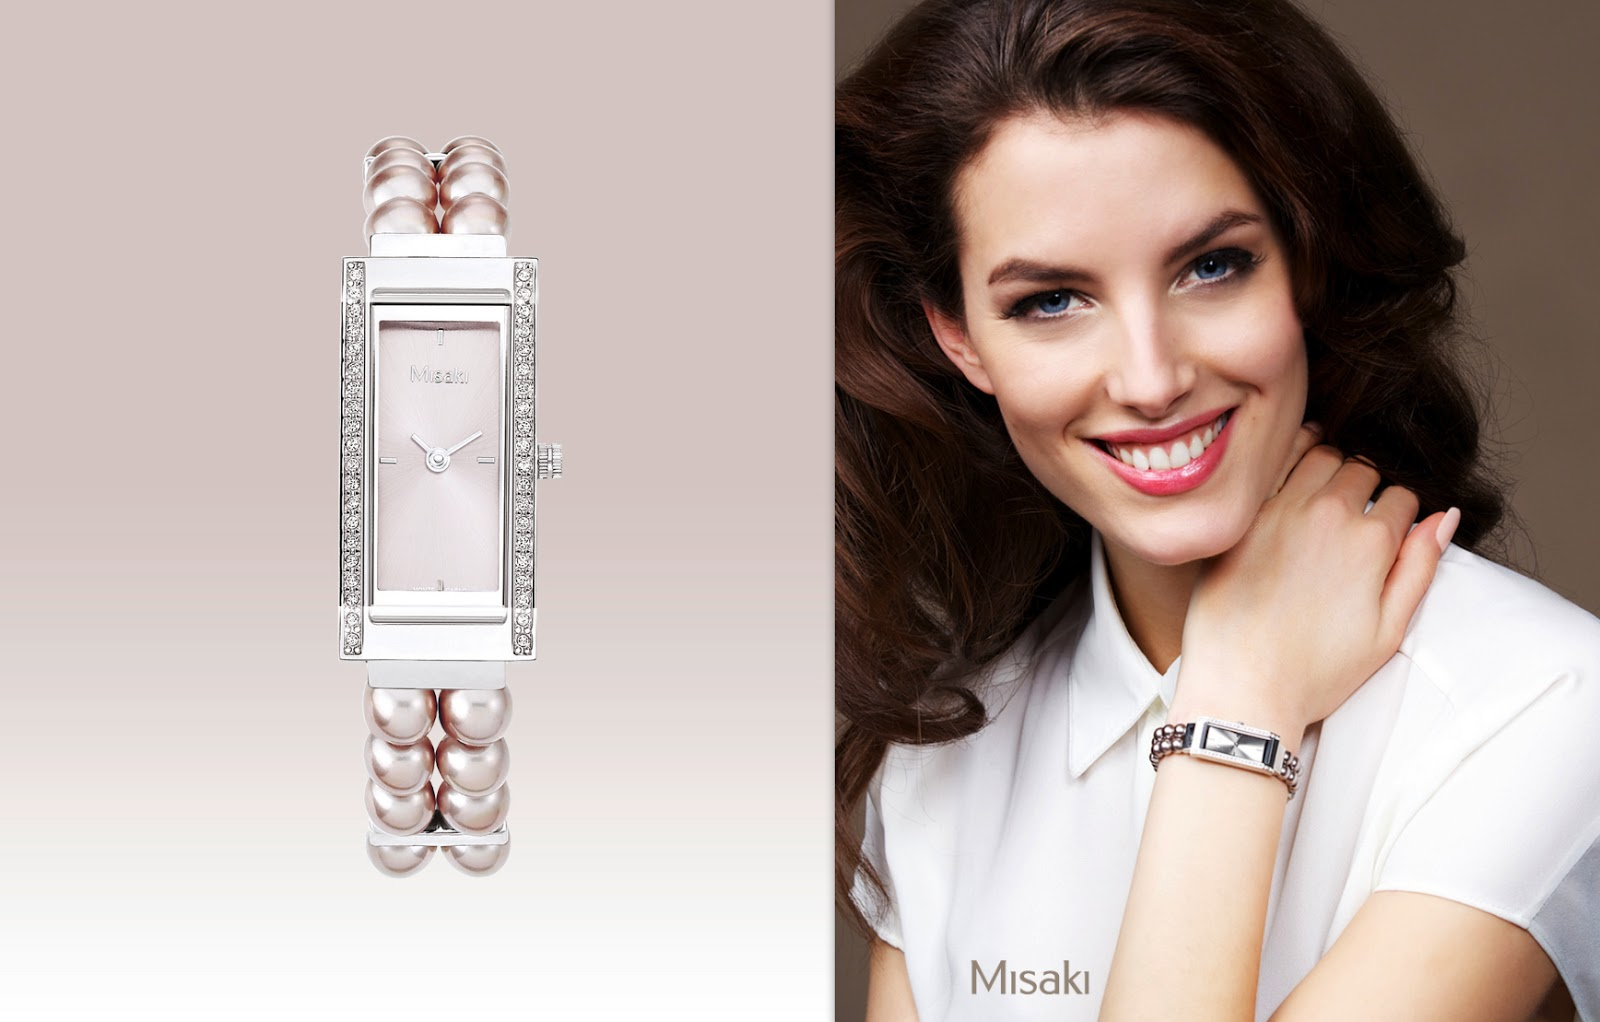 bicolor watch misaki en outletjoyeria acero watches onda mx and discount offers steel reloj cheap buy jewels